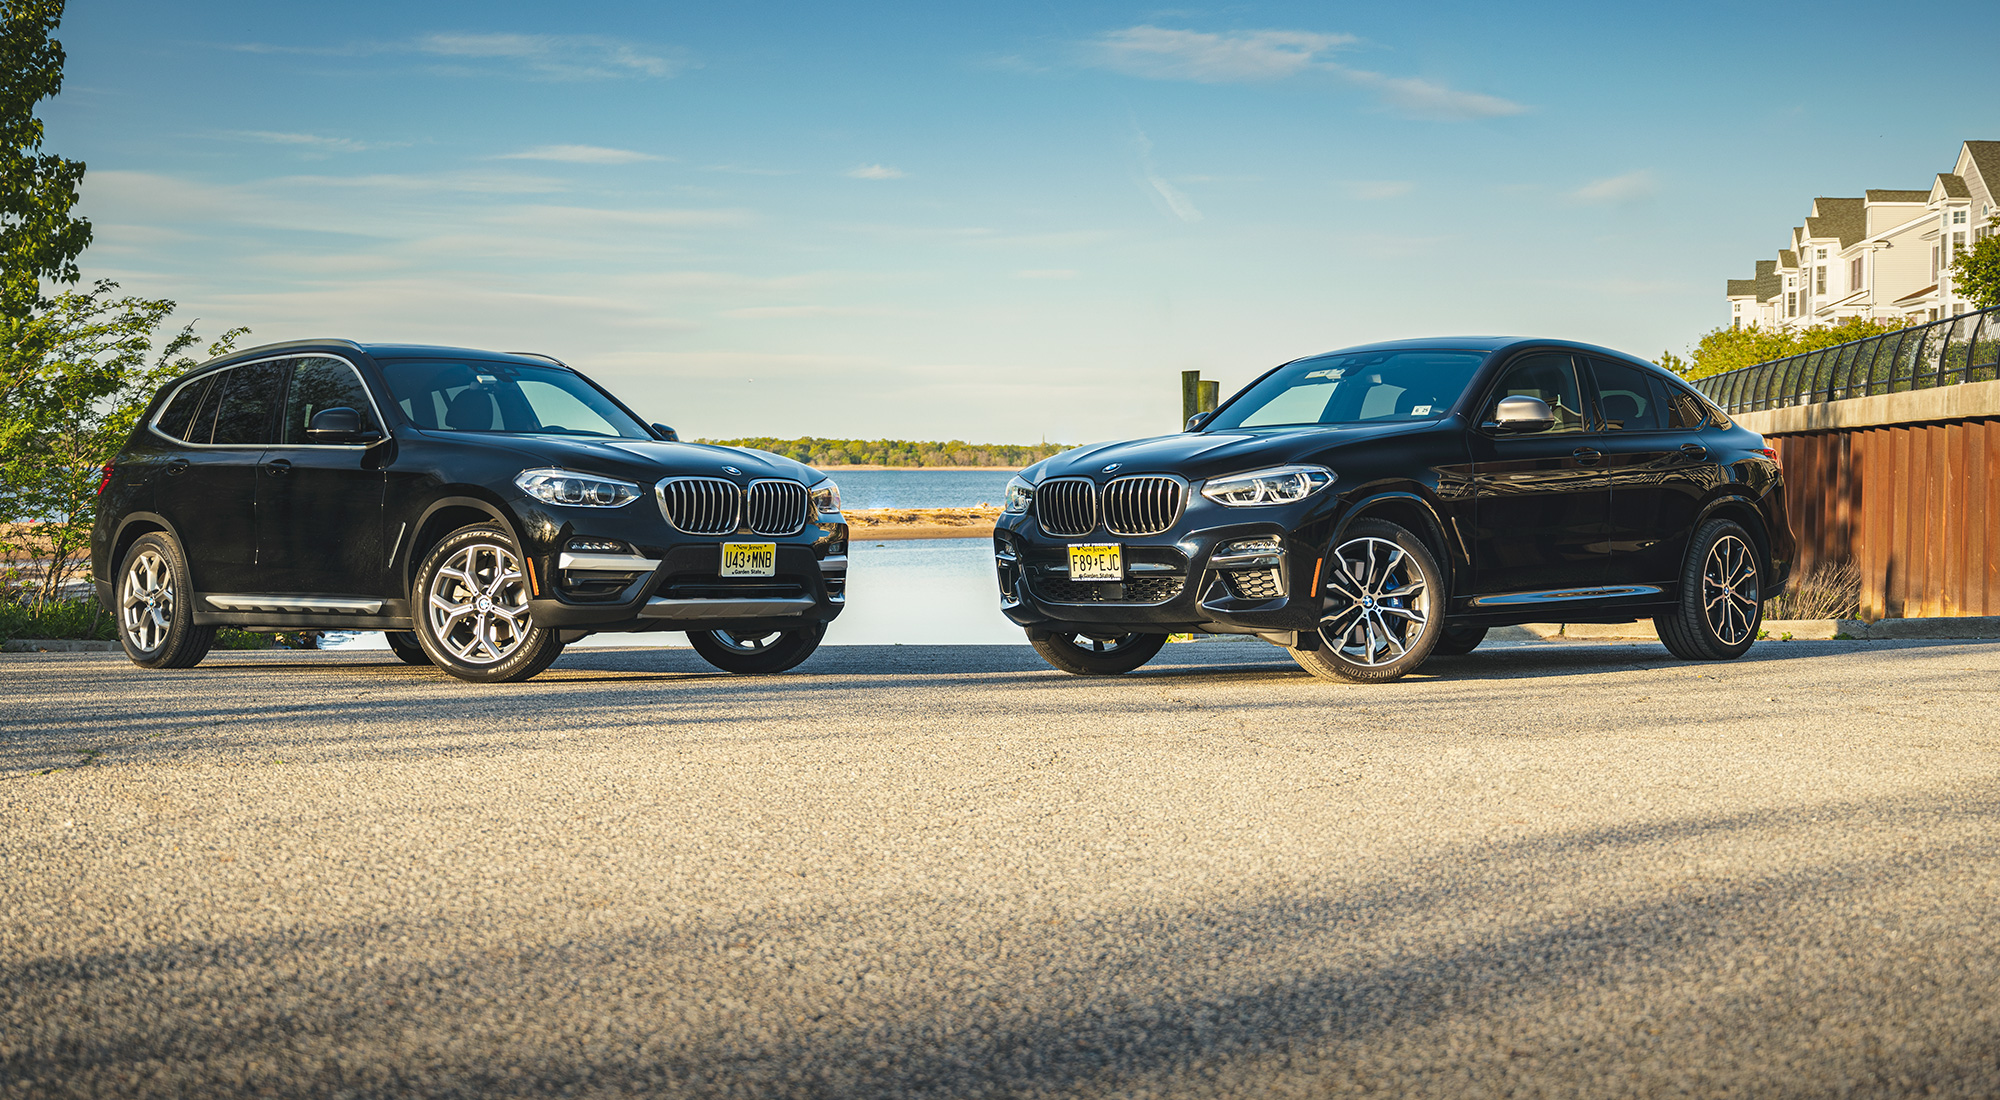 BMW X3 and X4